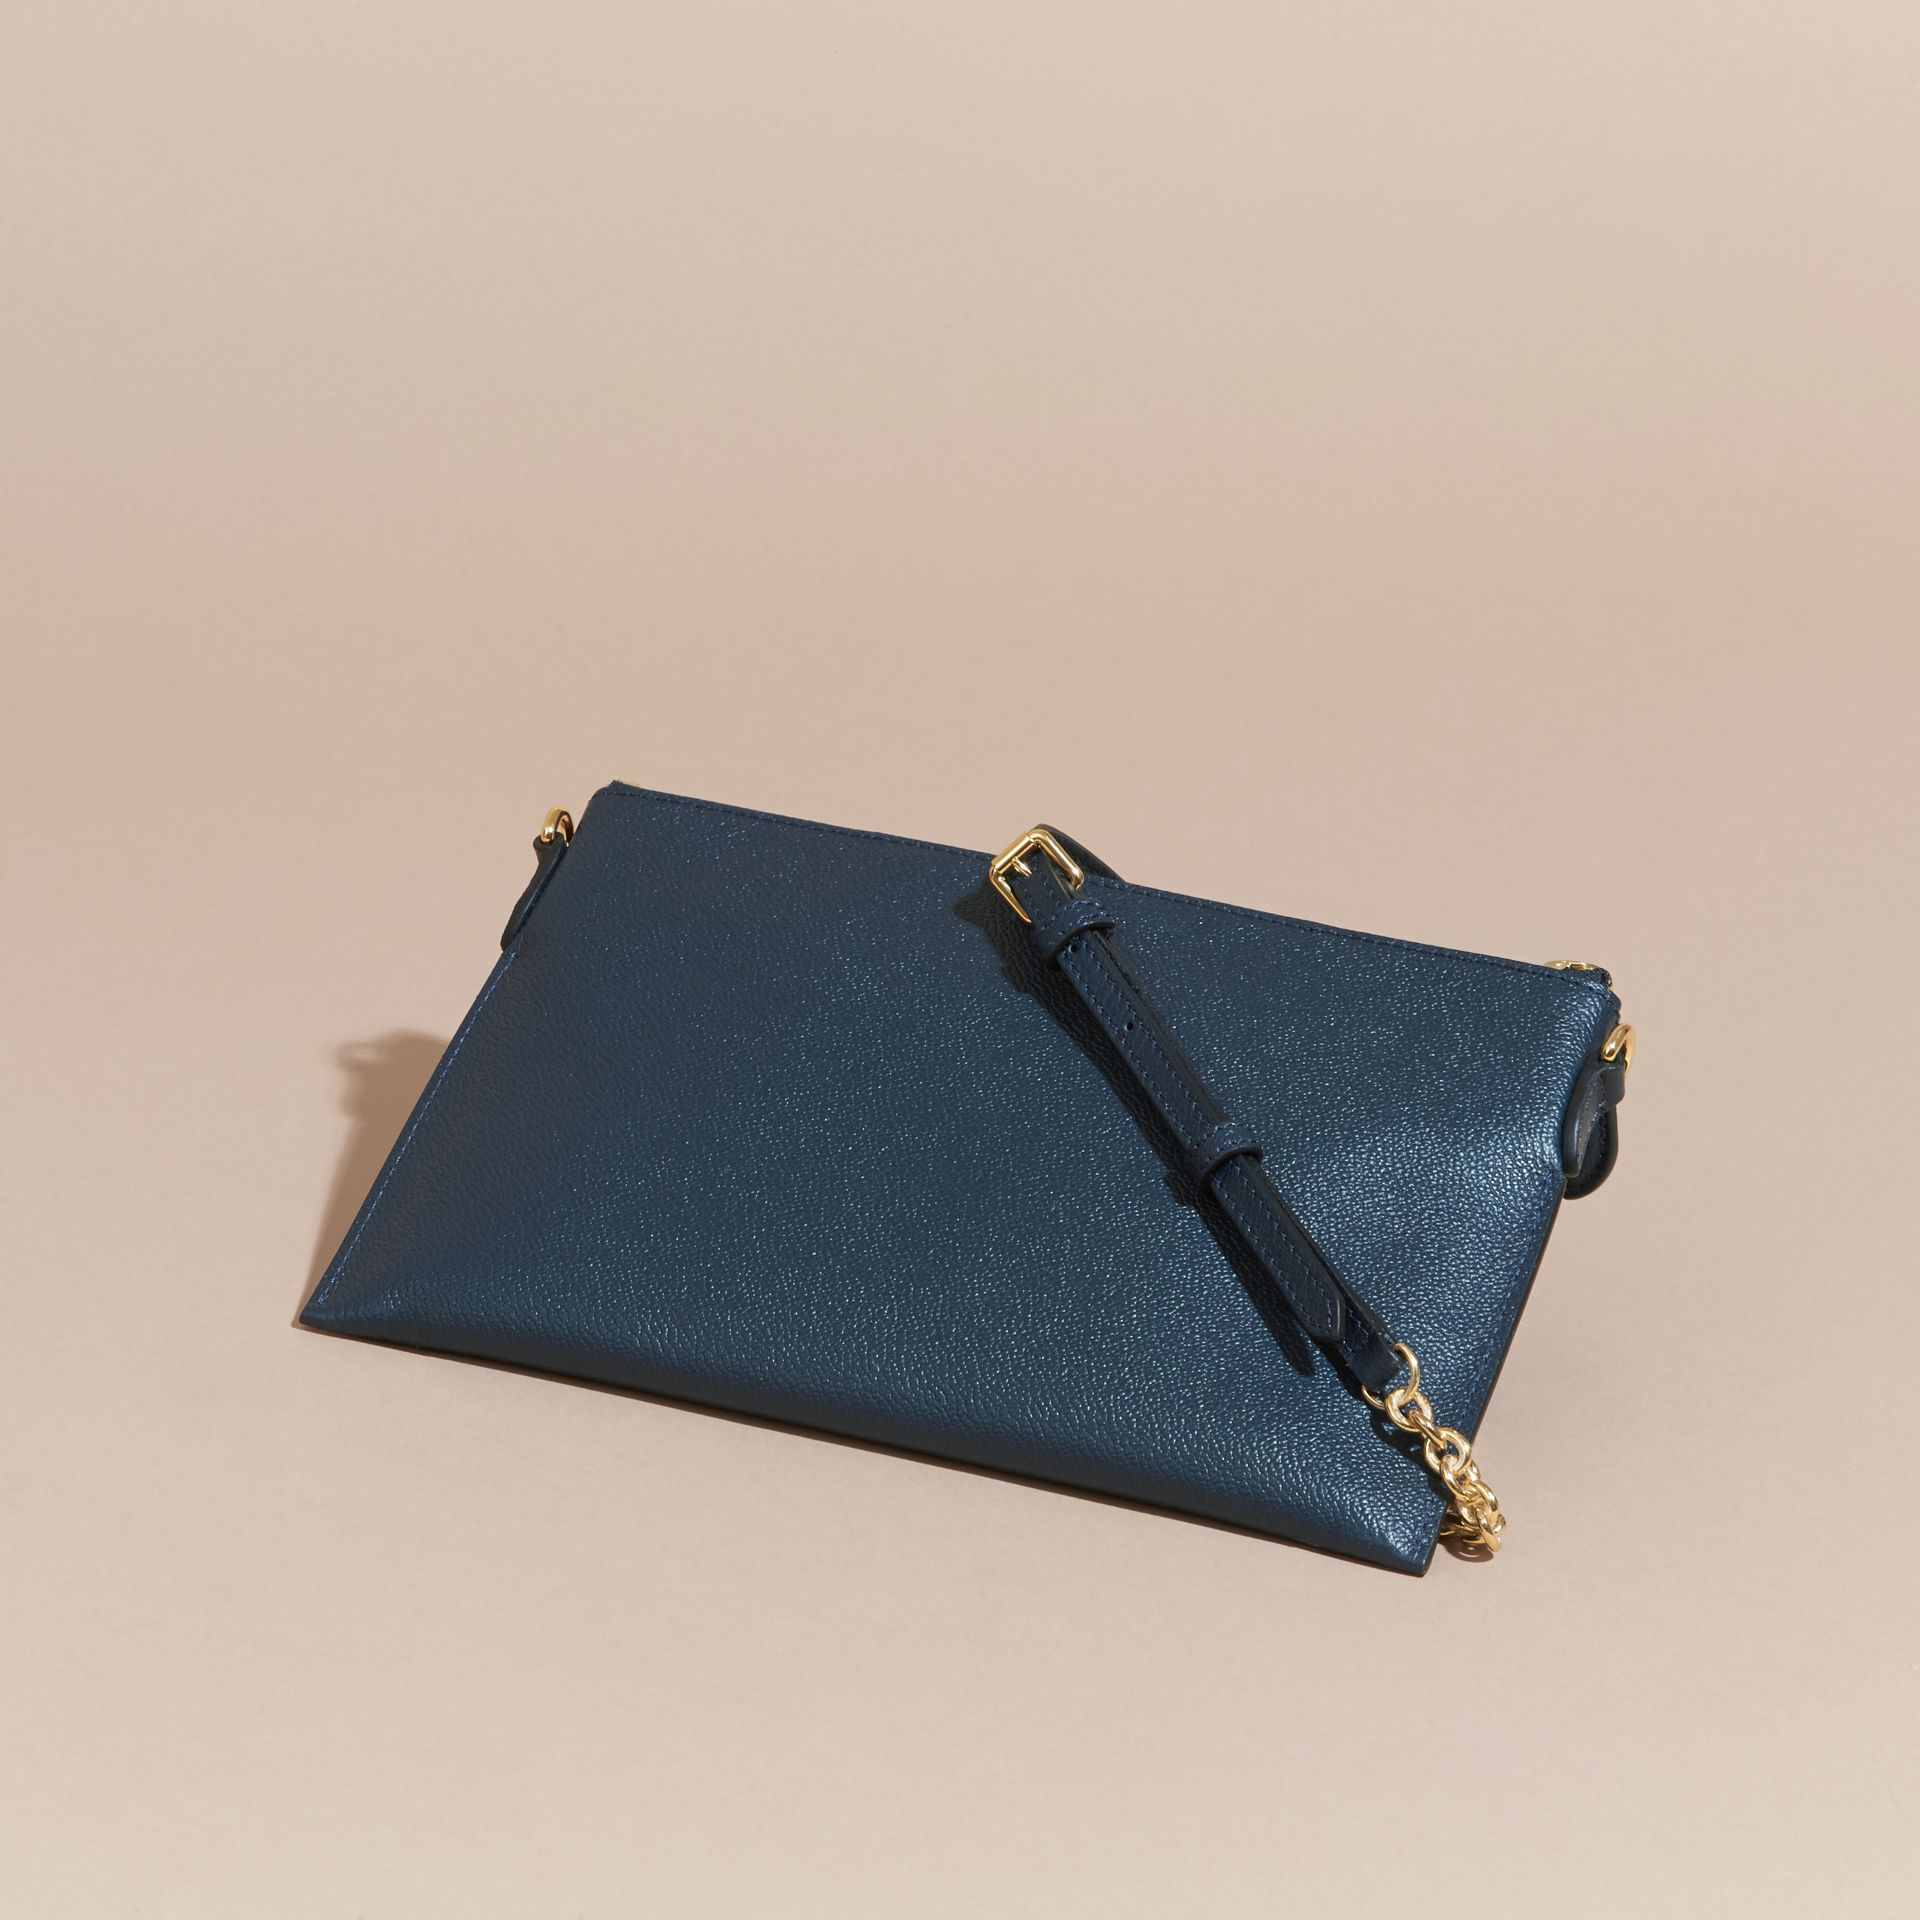 Leather Clutch Bag with Check Lining Blue Carbon - gallery image 5